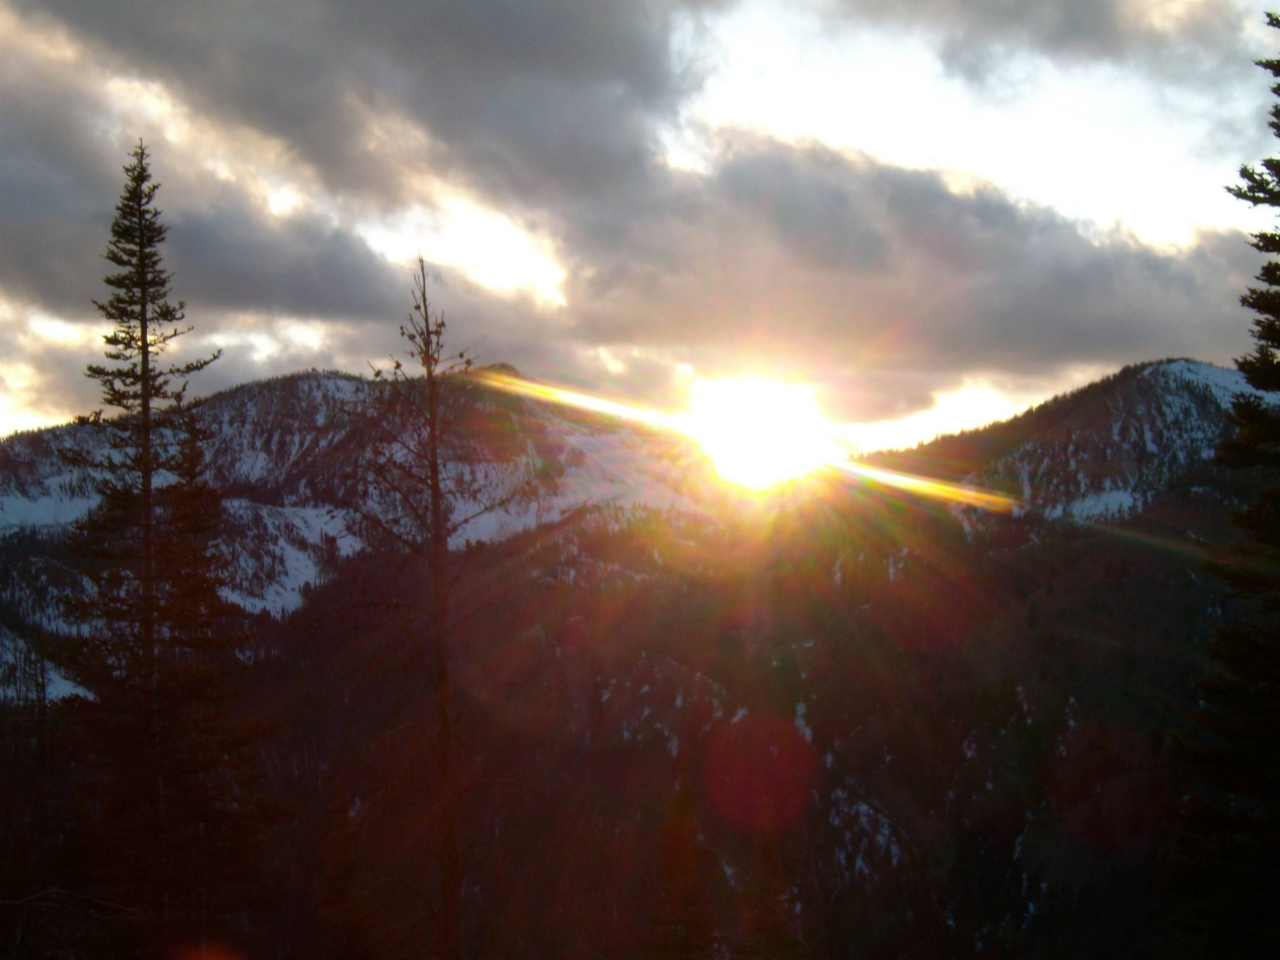 sunset over frank church river of no return wilderness area